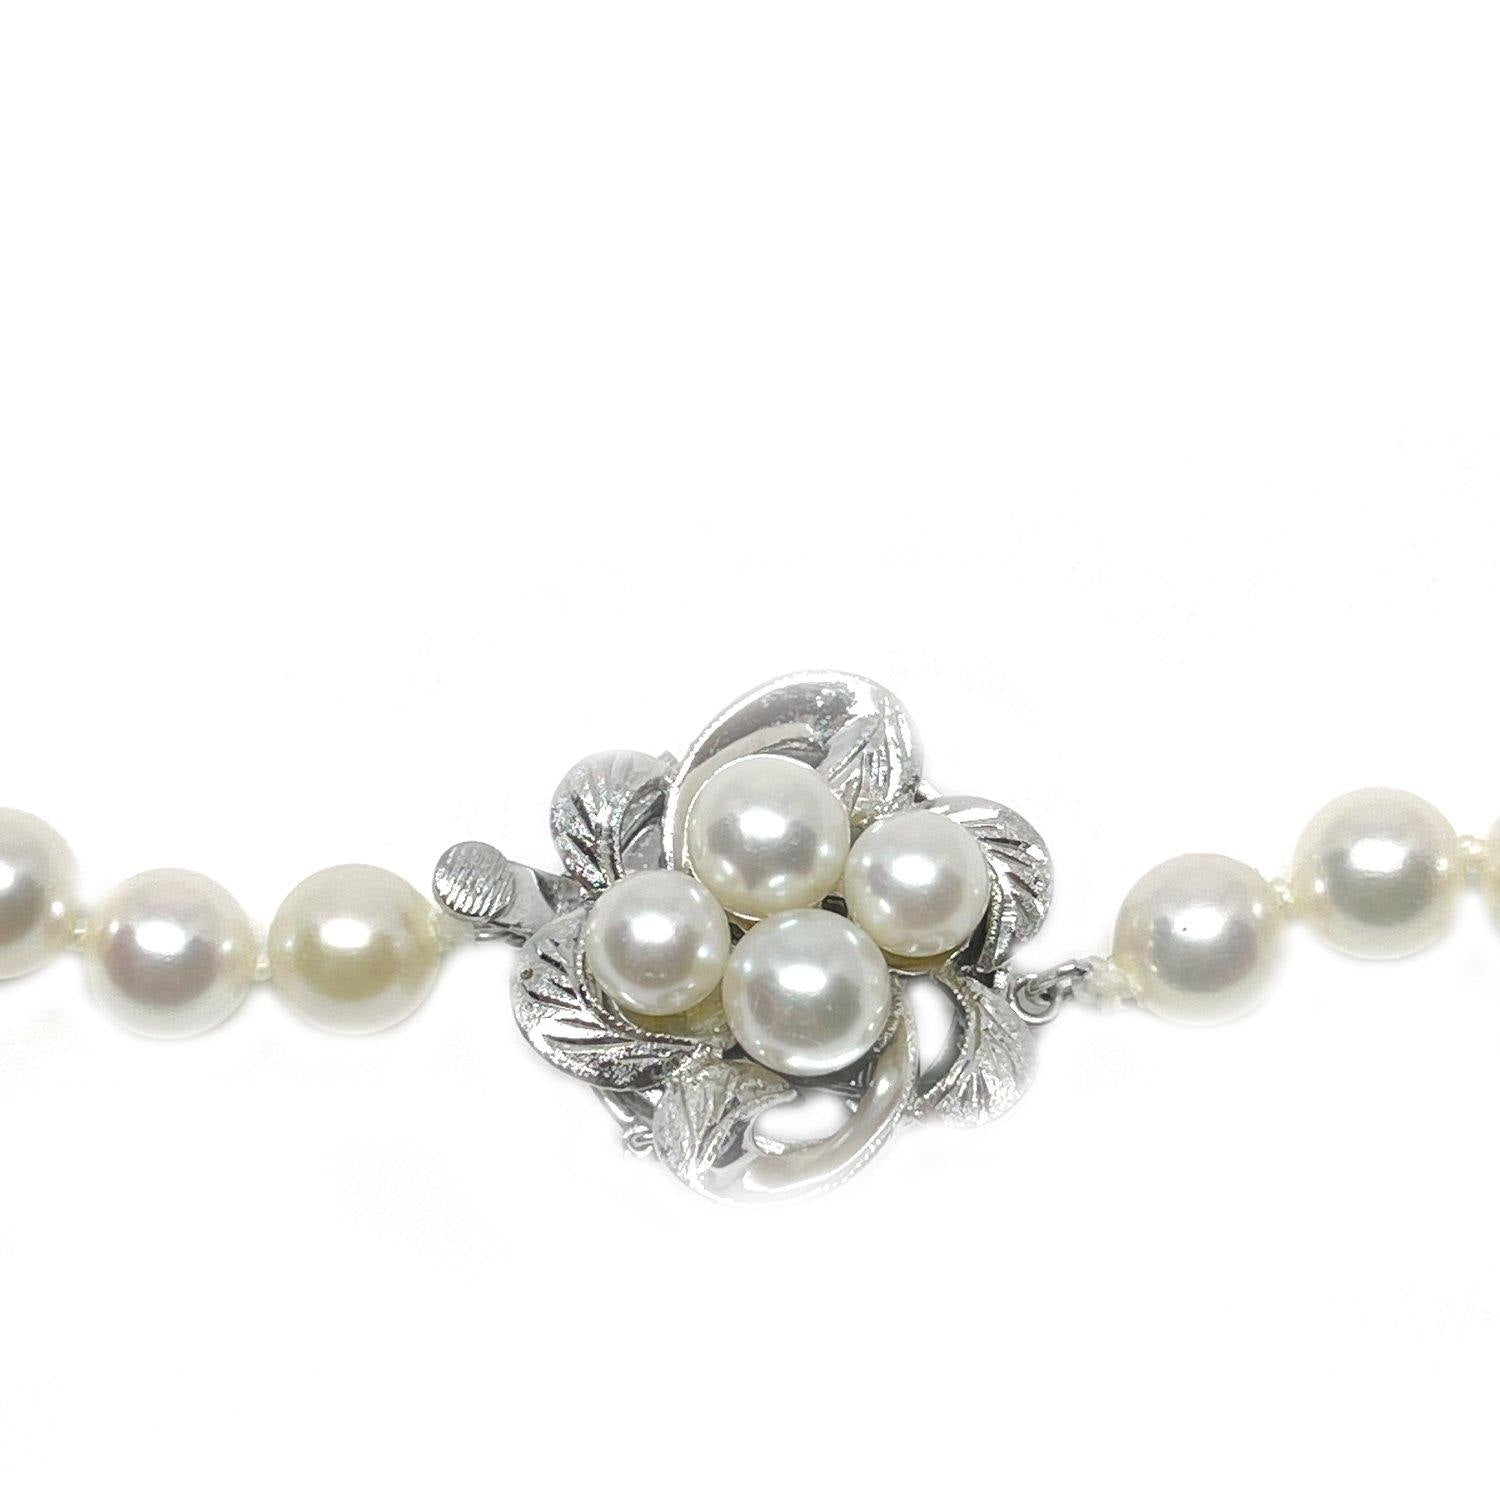 Mid Century Floral Japanese Saltwater Cultured Akoya Pearl Strand - Silver Vintage 16.25 Inch